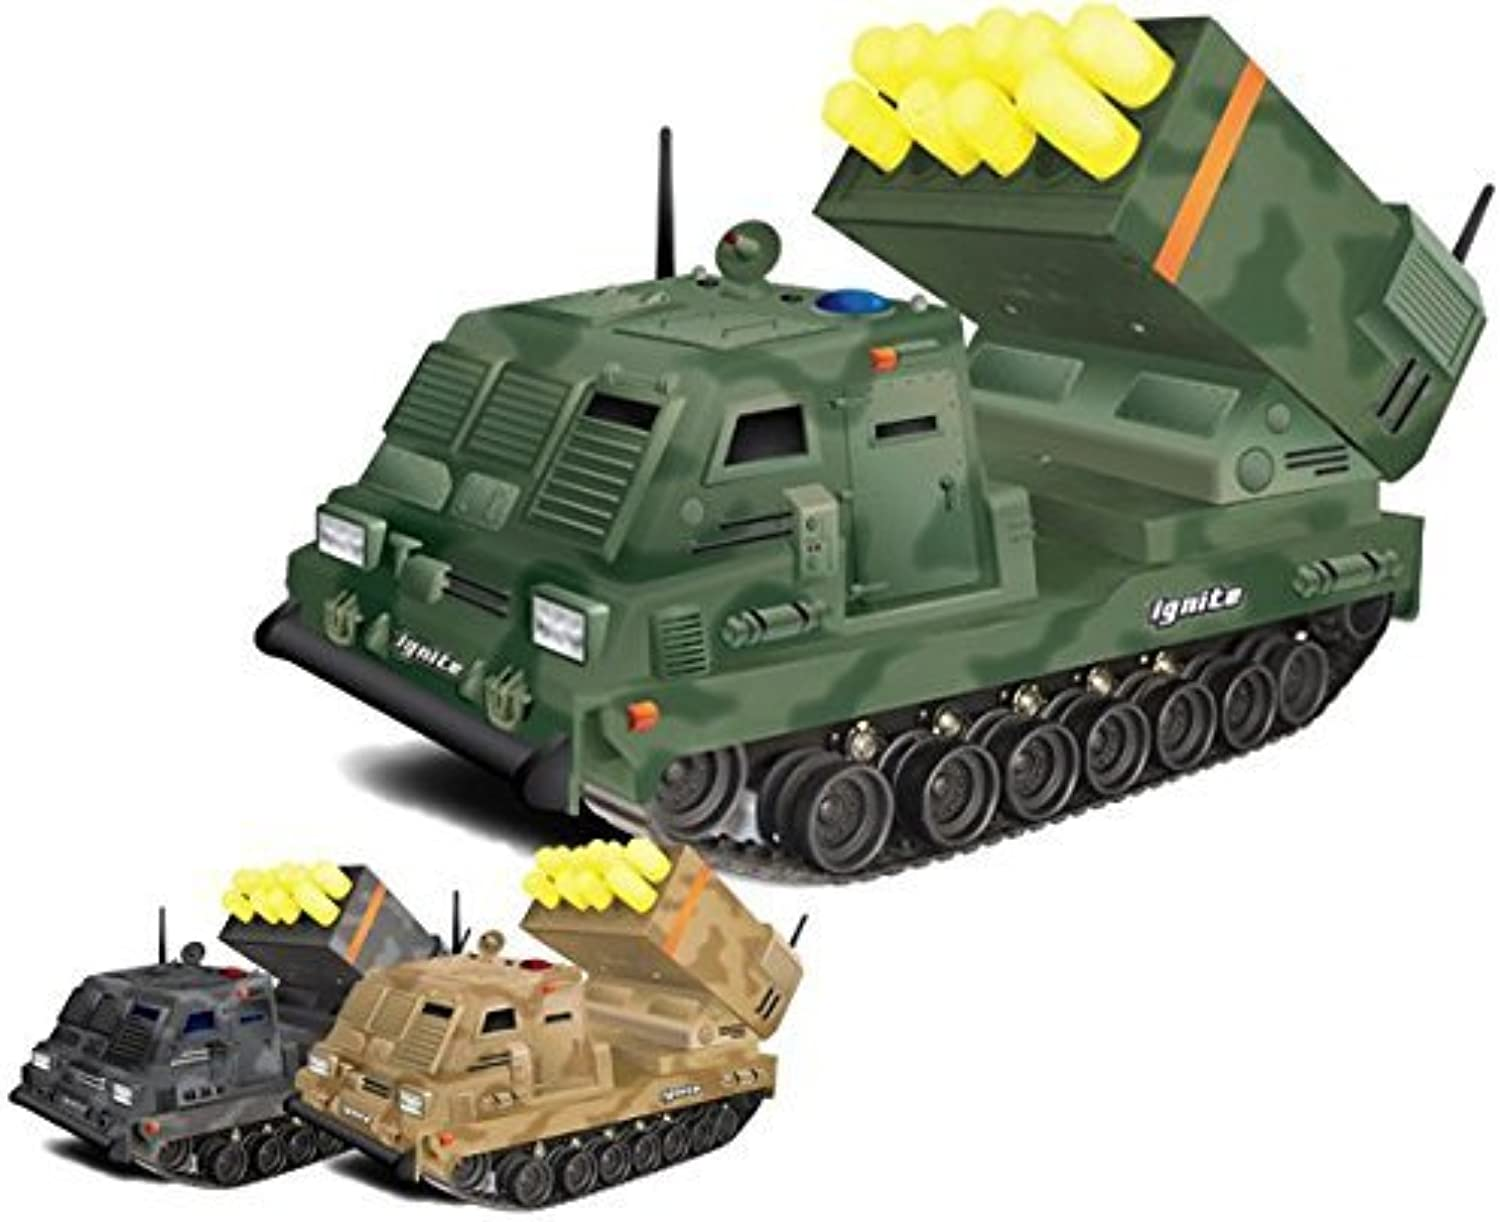 Ignite The Jackal Mobile Missile Launcher Full Function Remote Control Vehicle by Bear River International